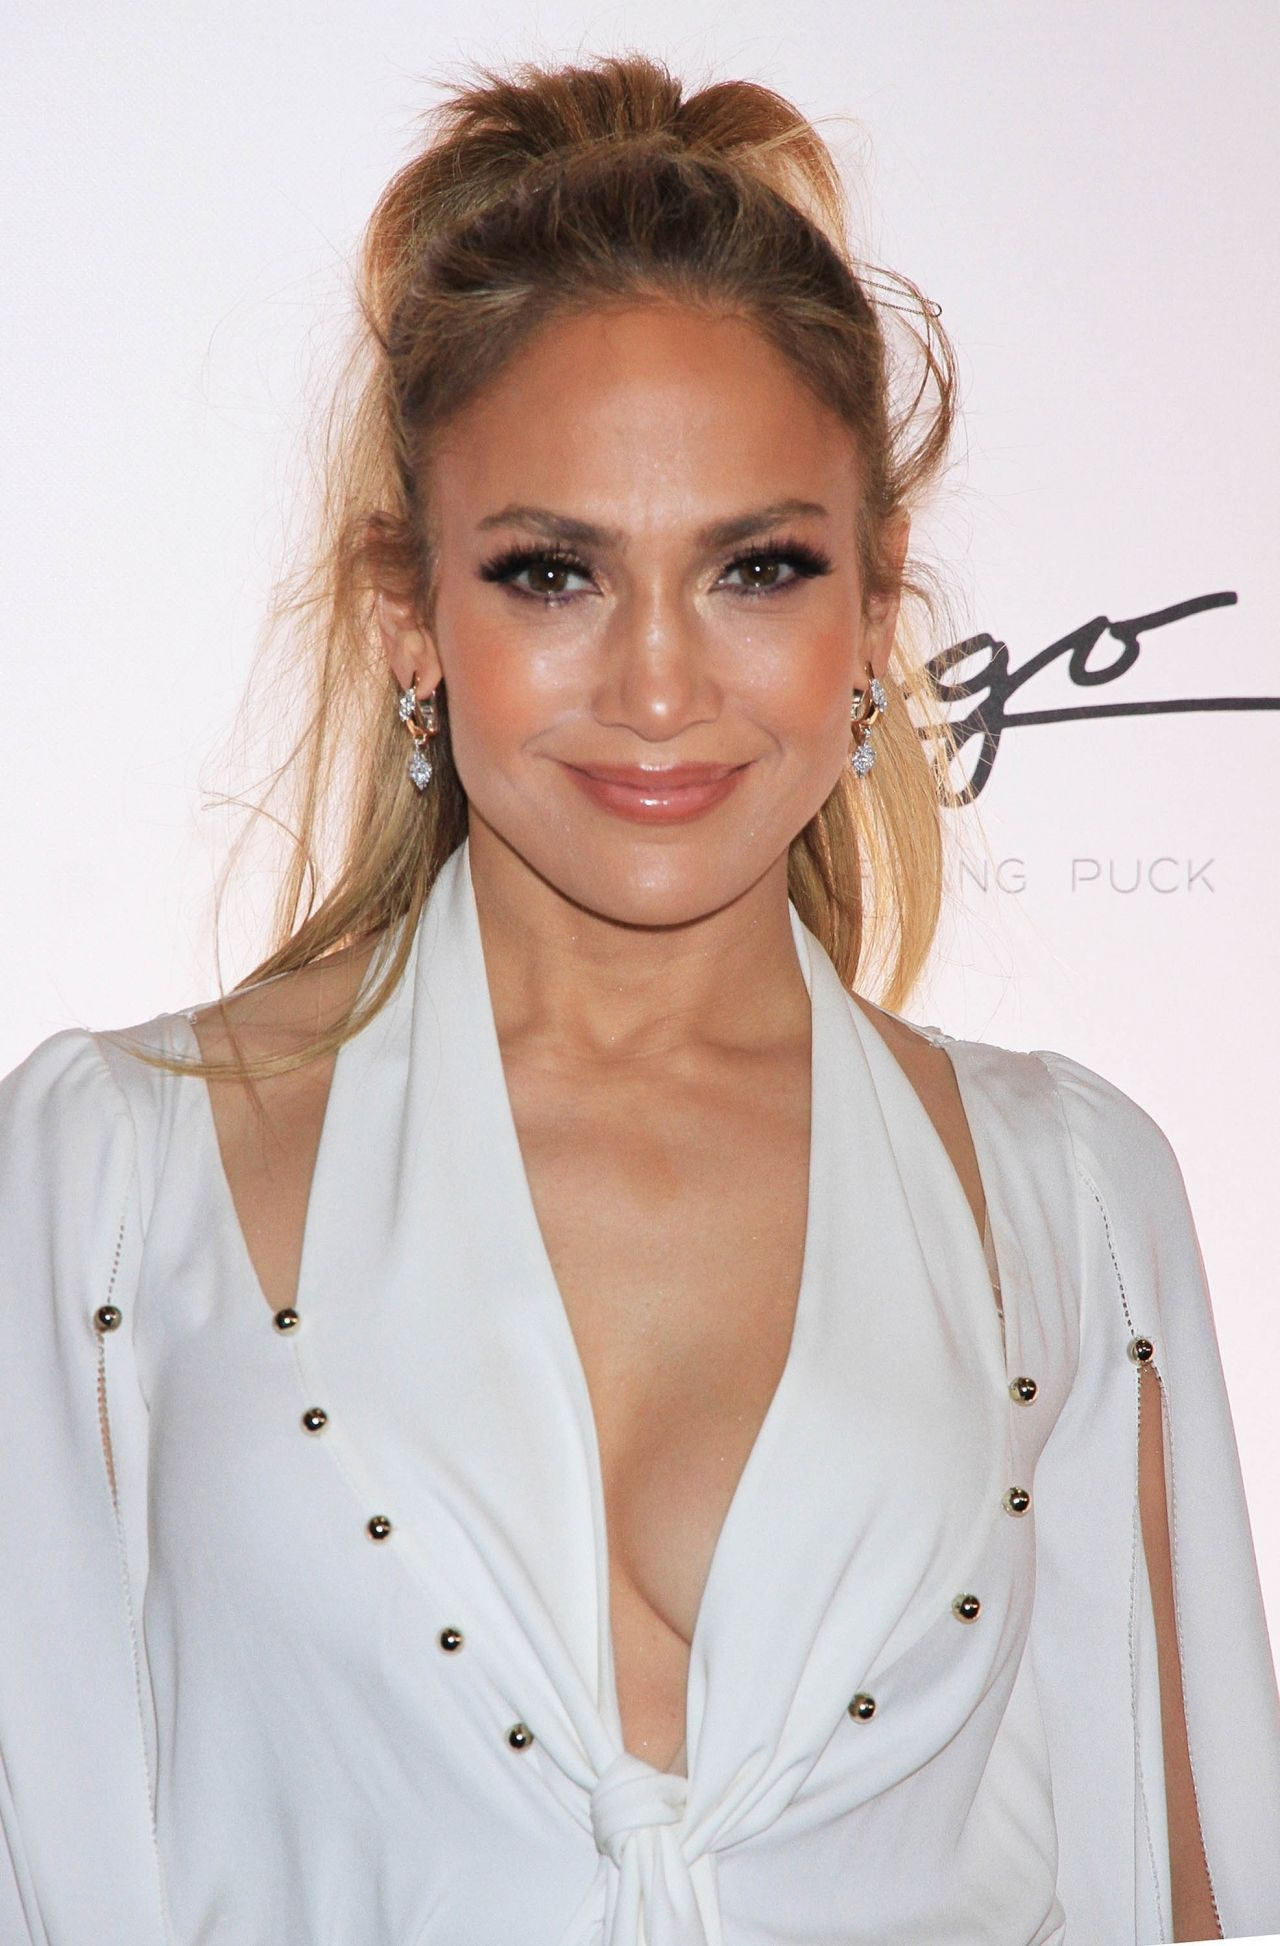 http://celebmafia.com/wp-content/uploads/2018/05/jennifer-lopez-celebrates-release-of-new-single-dinero-in-las-vegas-8.jpg